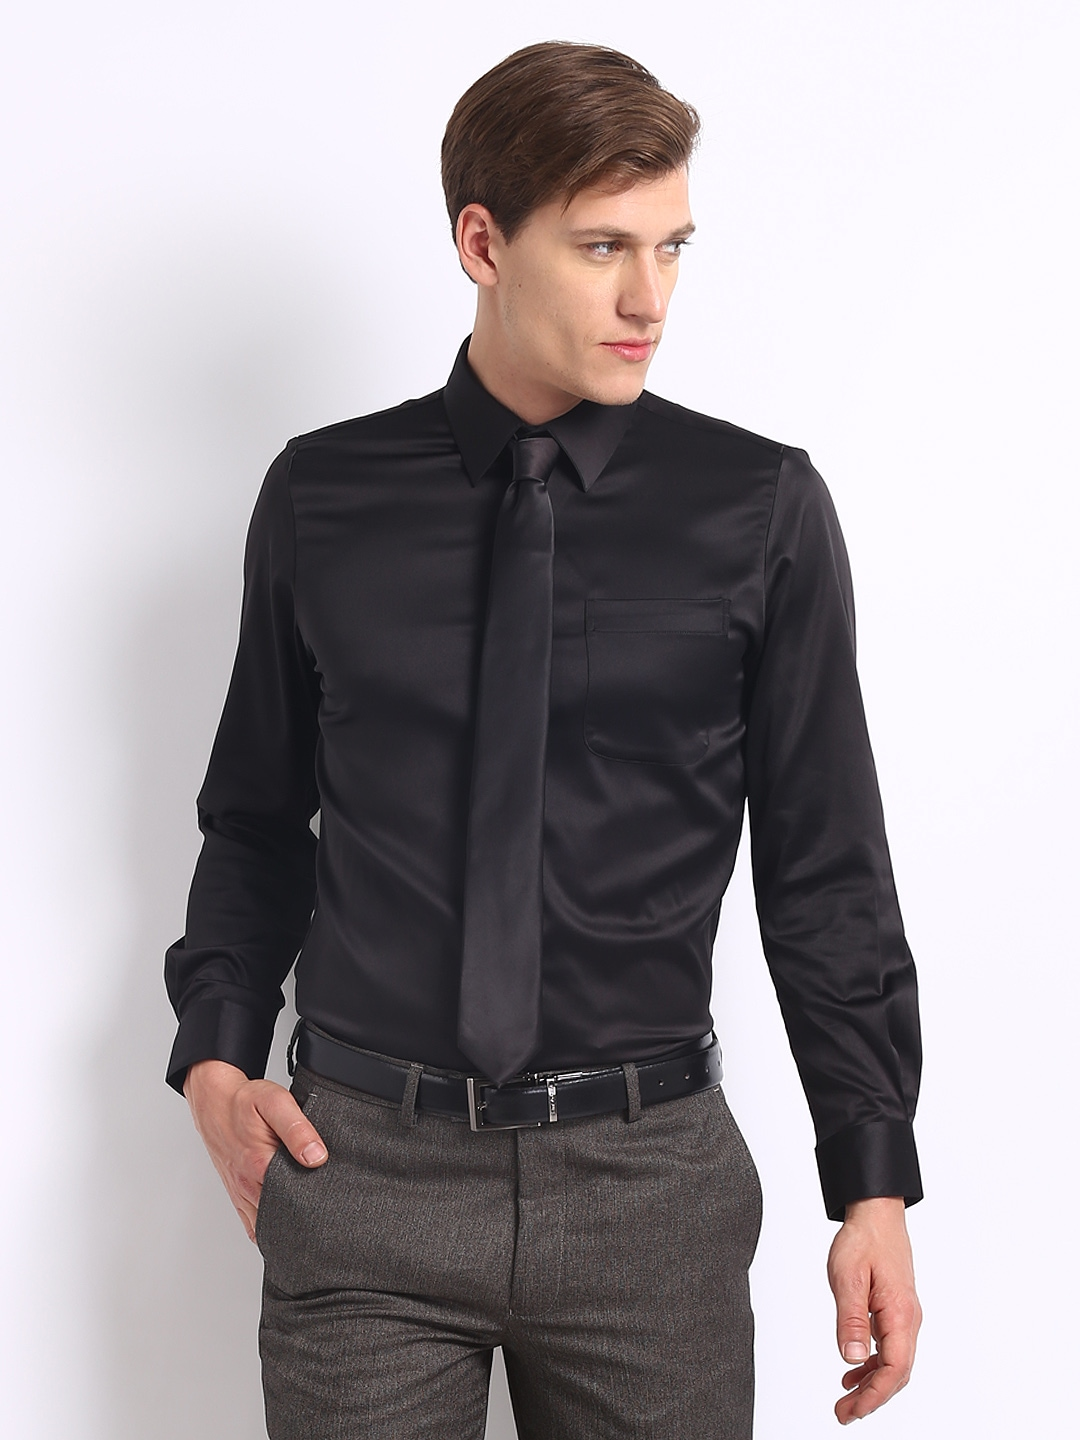 Black shirt black tie artee shirt for Black suit with black shirt and tie